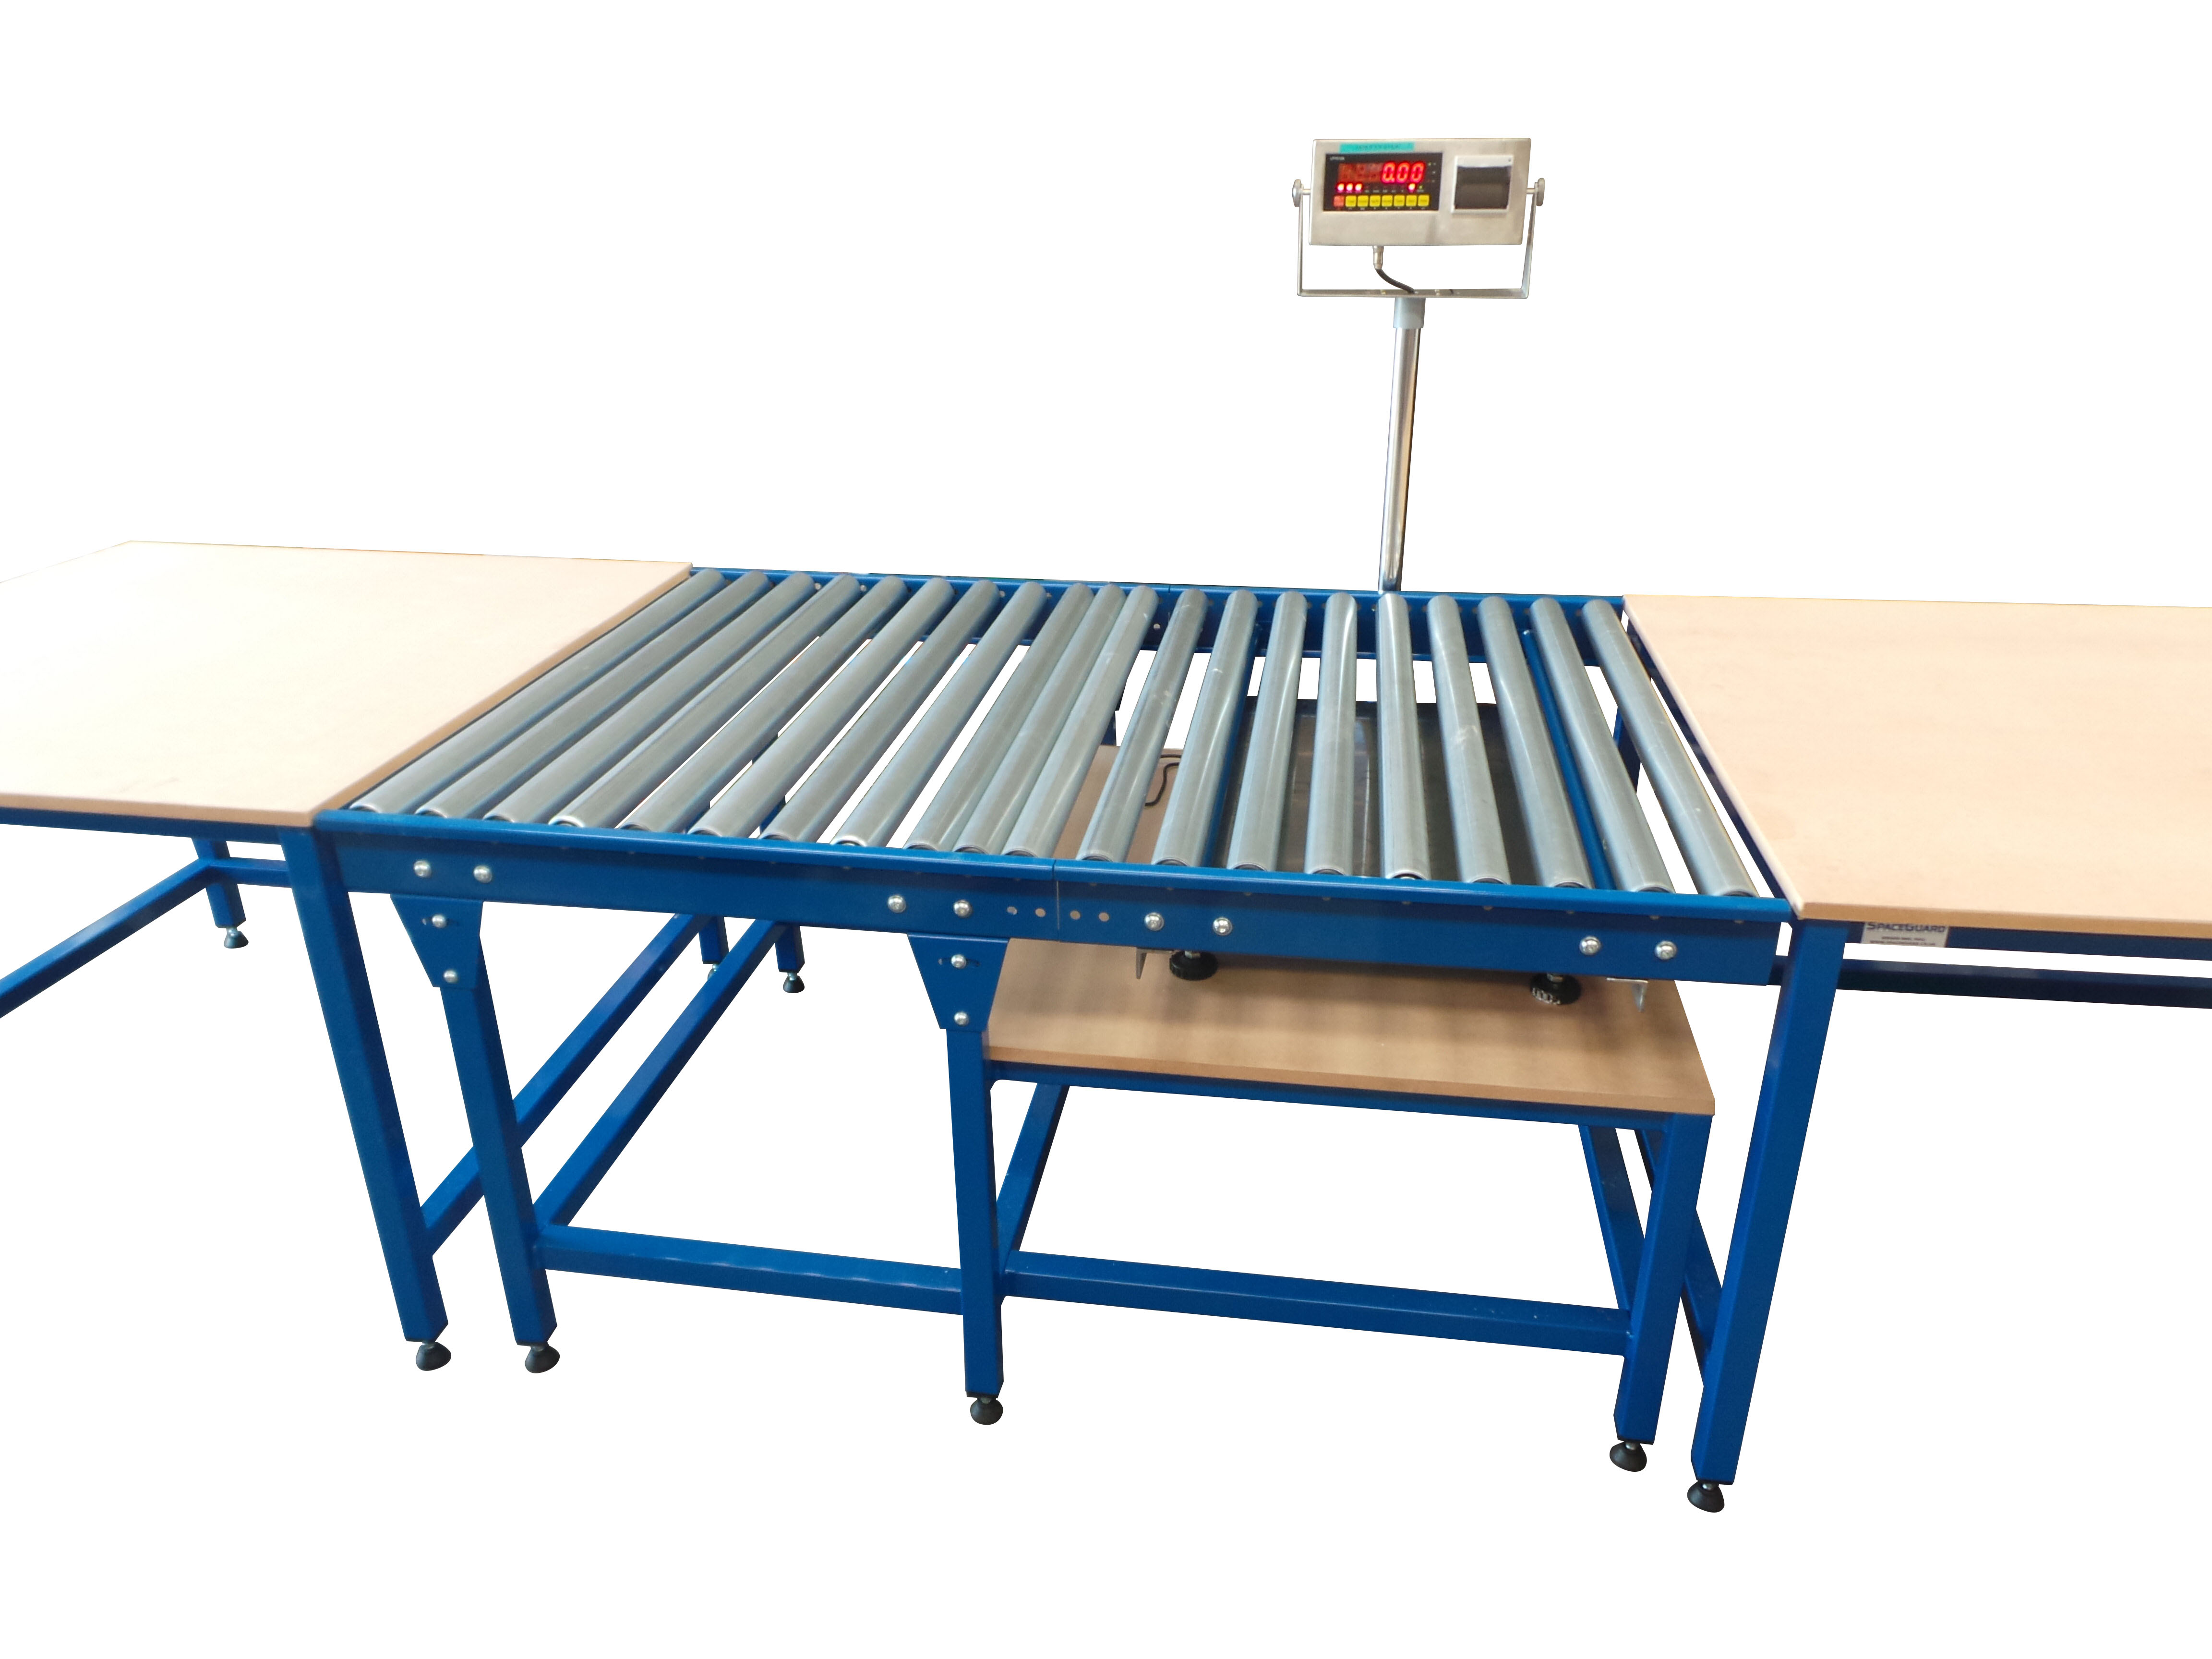 Quality Conveyors Manufactured In The Uk By Spaceguard